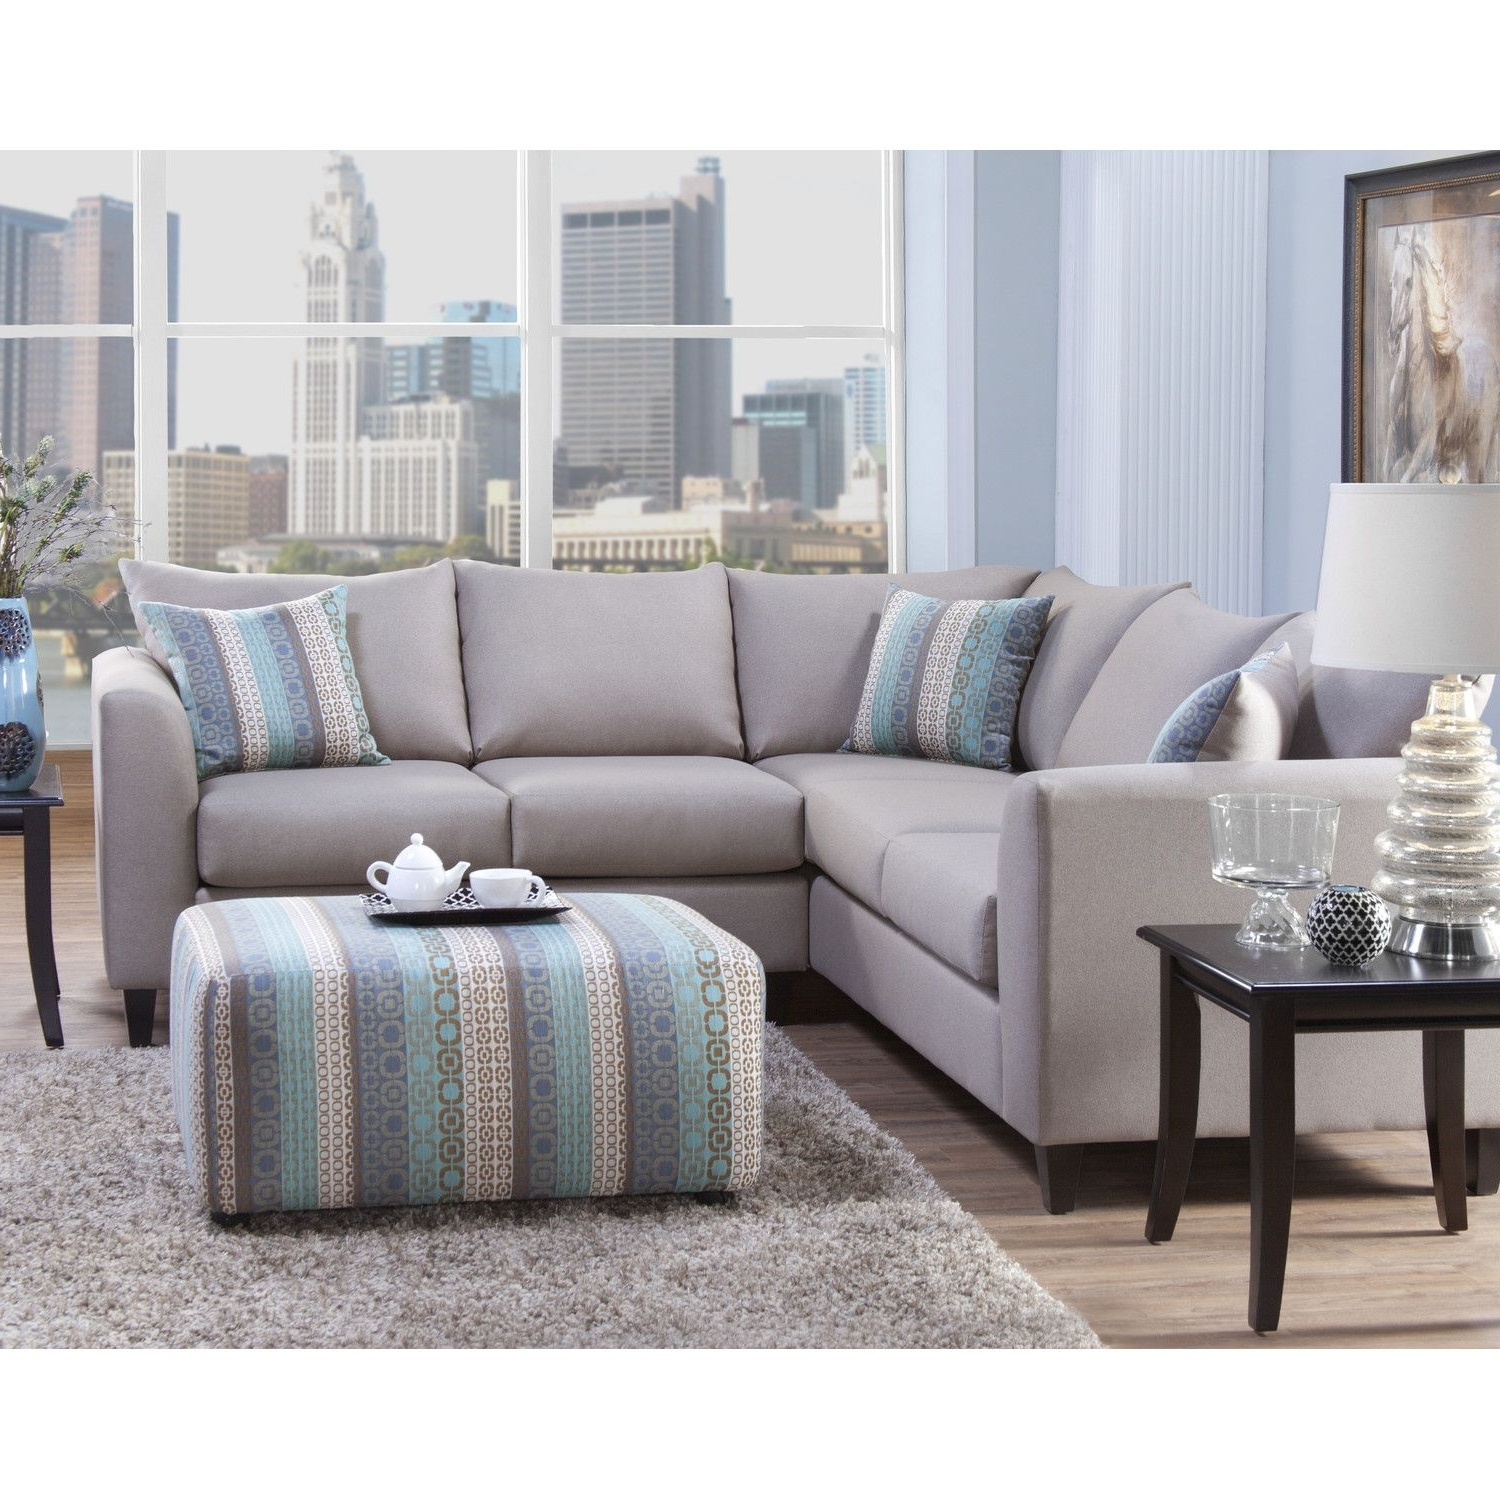 Free Shipping! Shop Wayfair For Serta Upholstery Sectional – Great Regarding Well Known Ontario Canada Sectional Sofas (View 13 of 15)